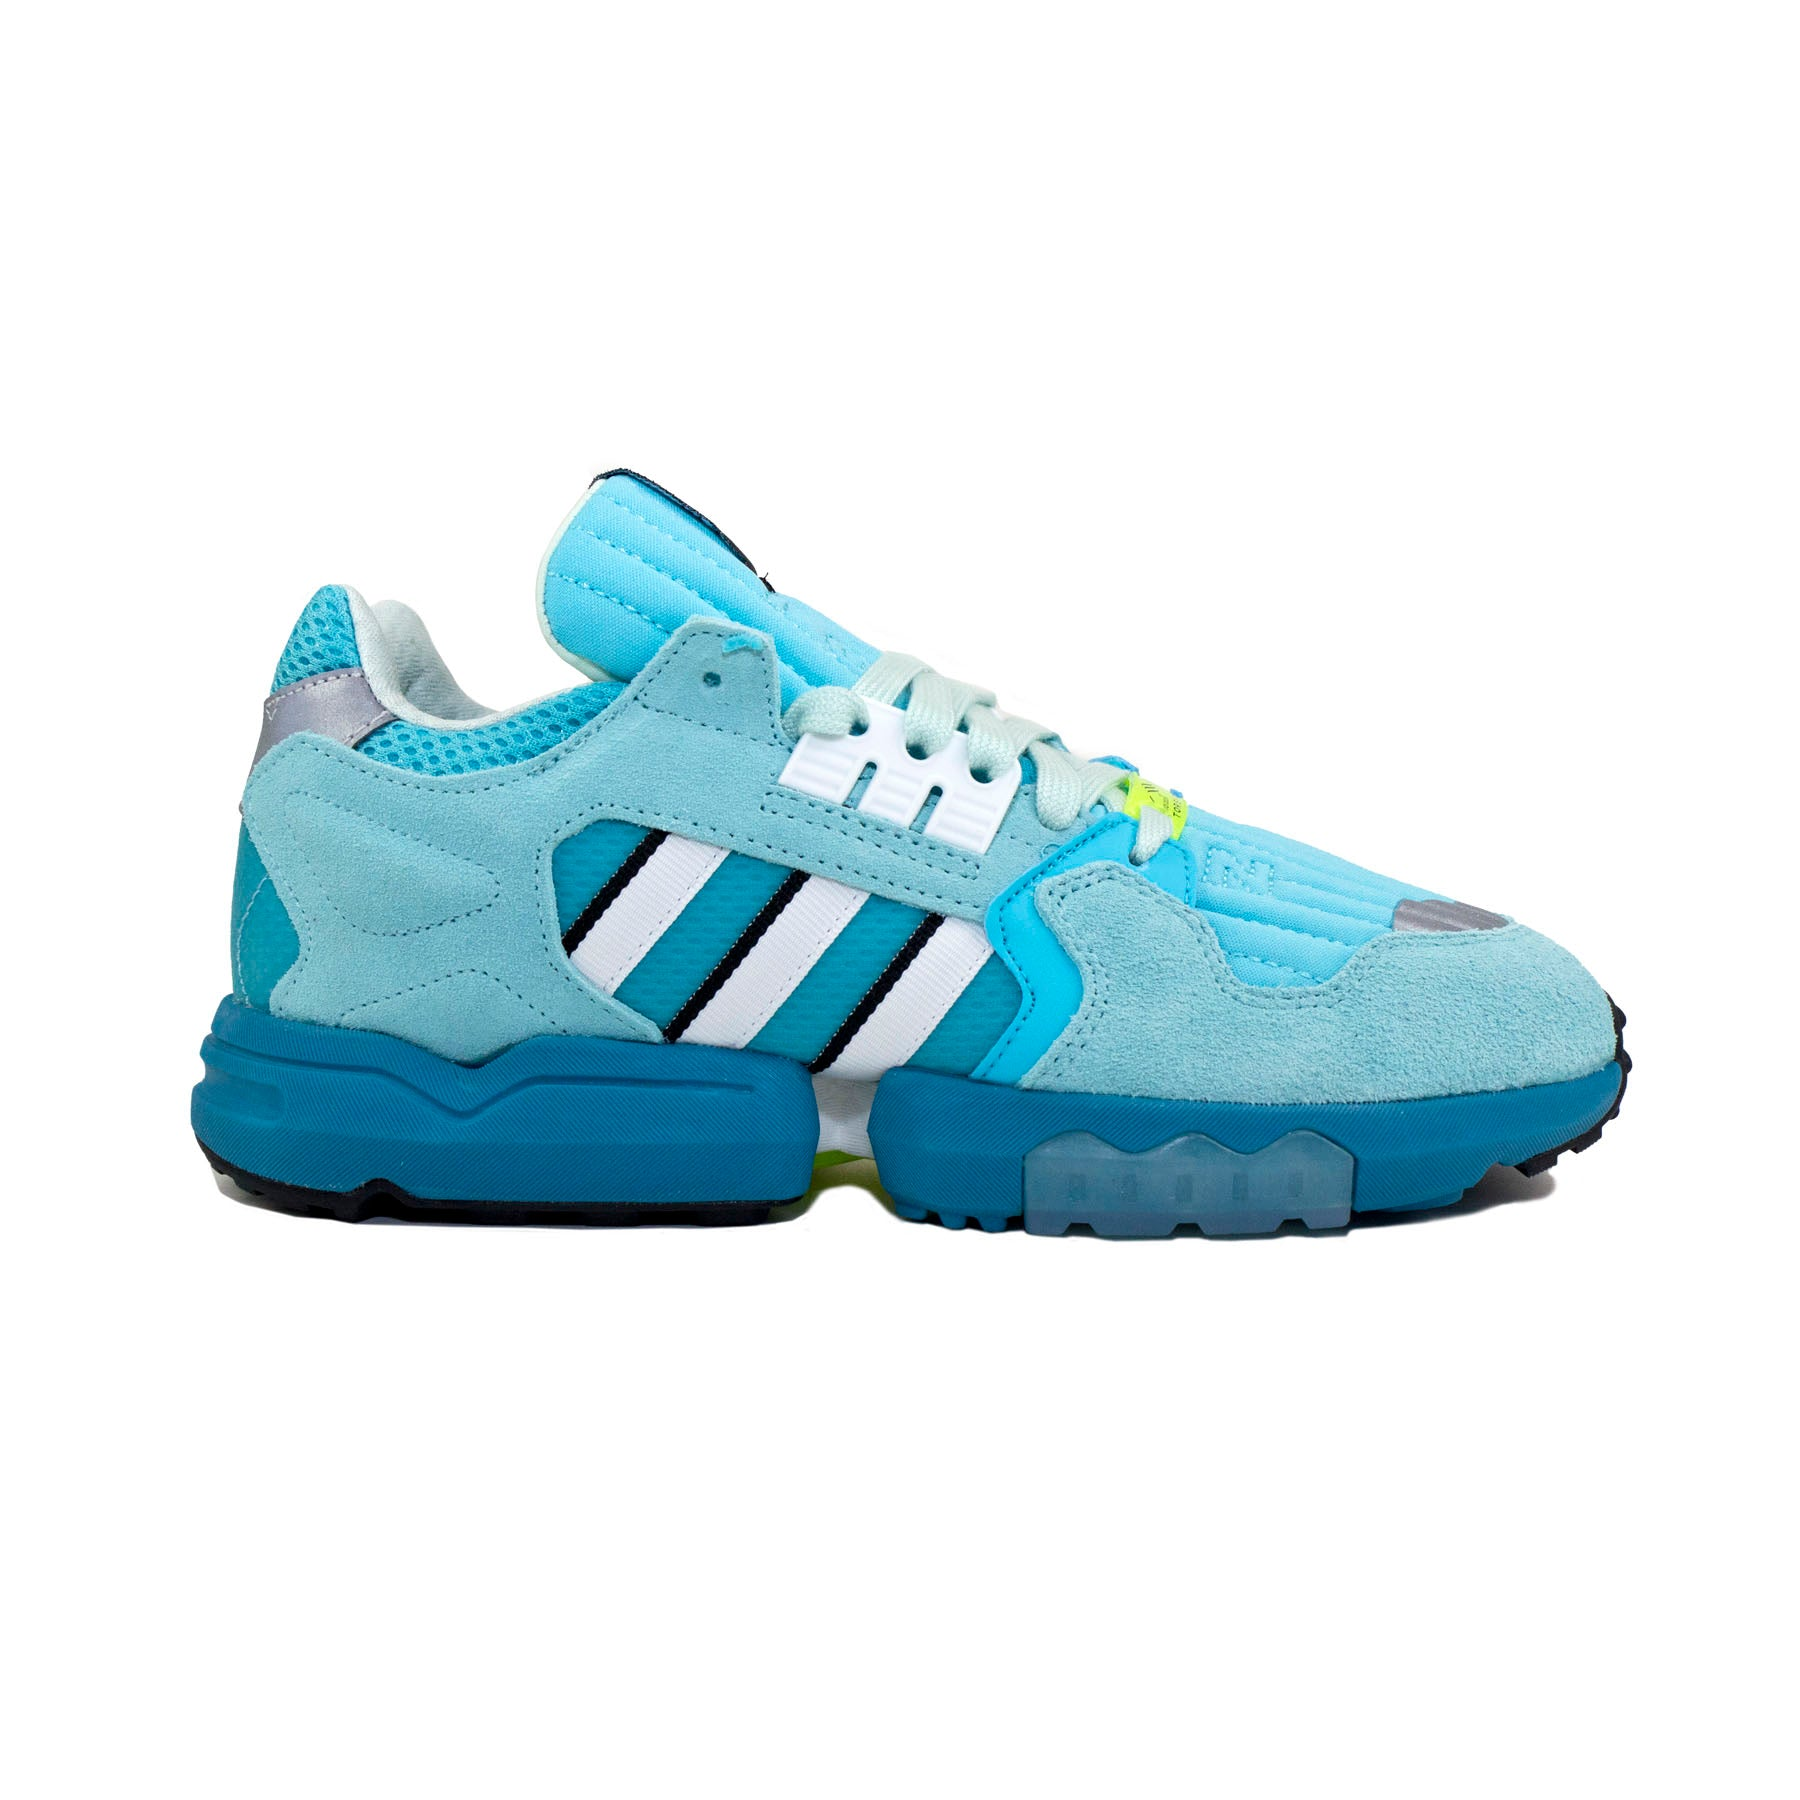 ZX Torsion Light Aqua/Cloud White - leaders1354